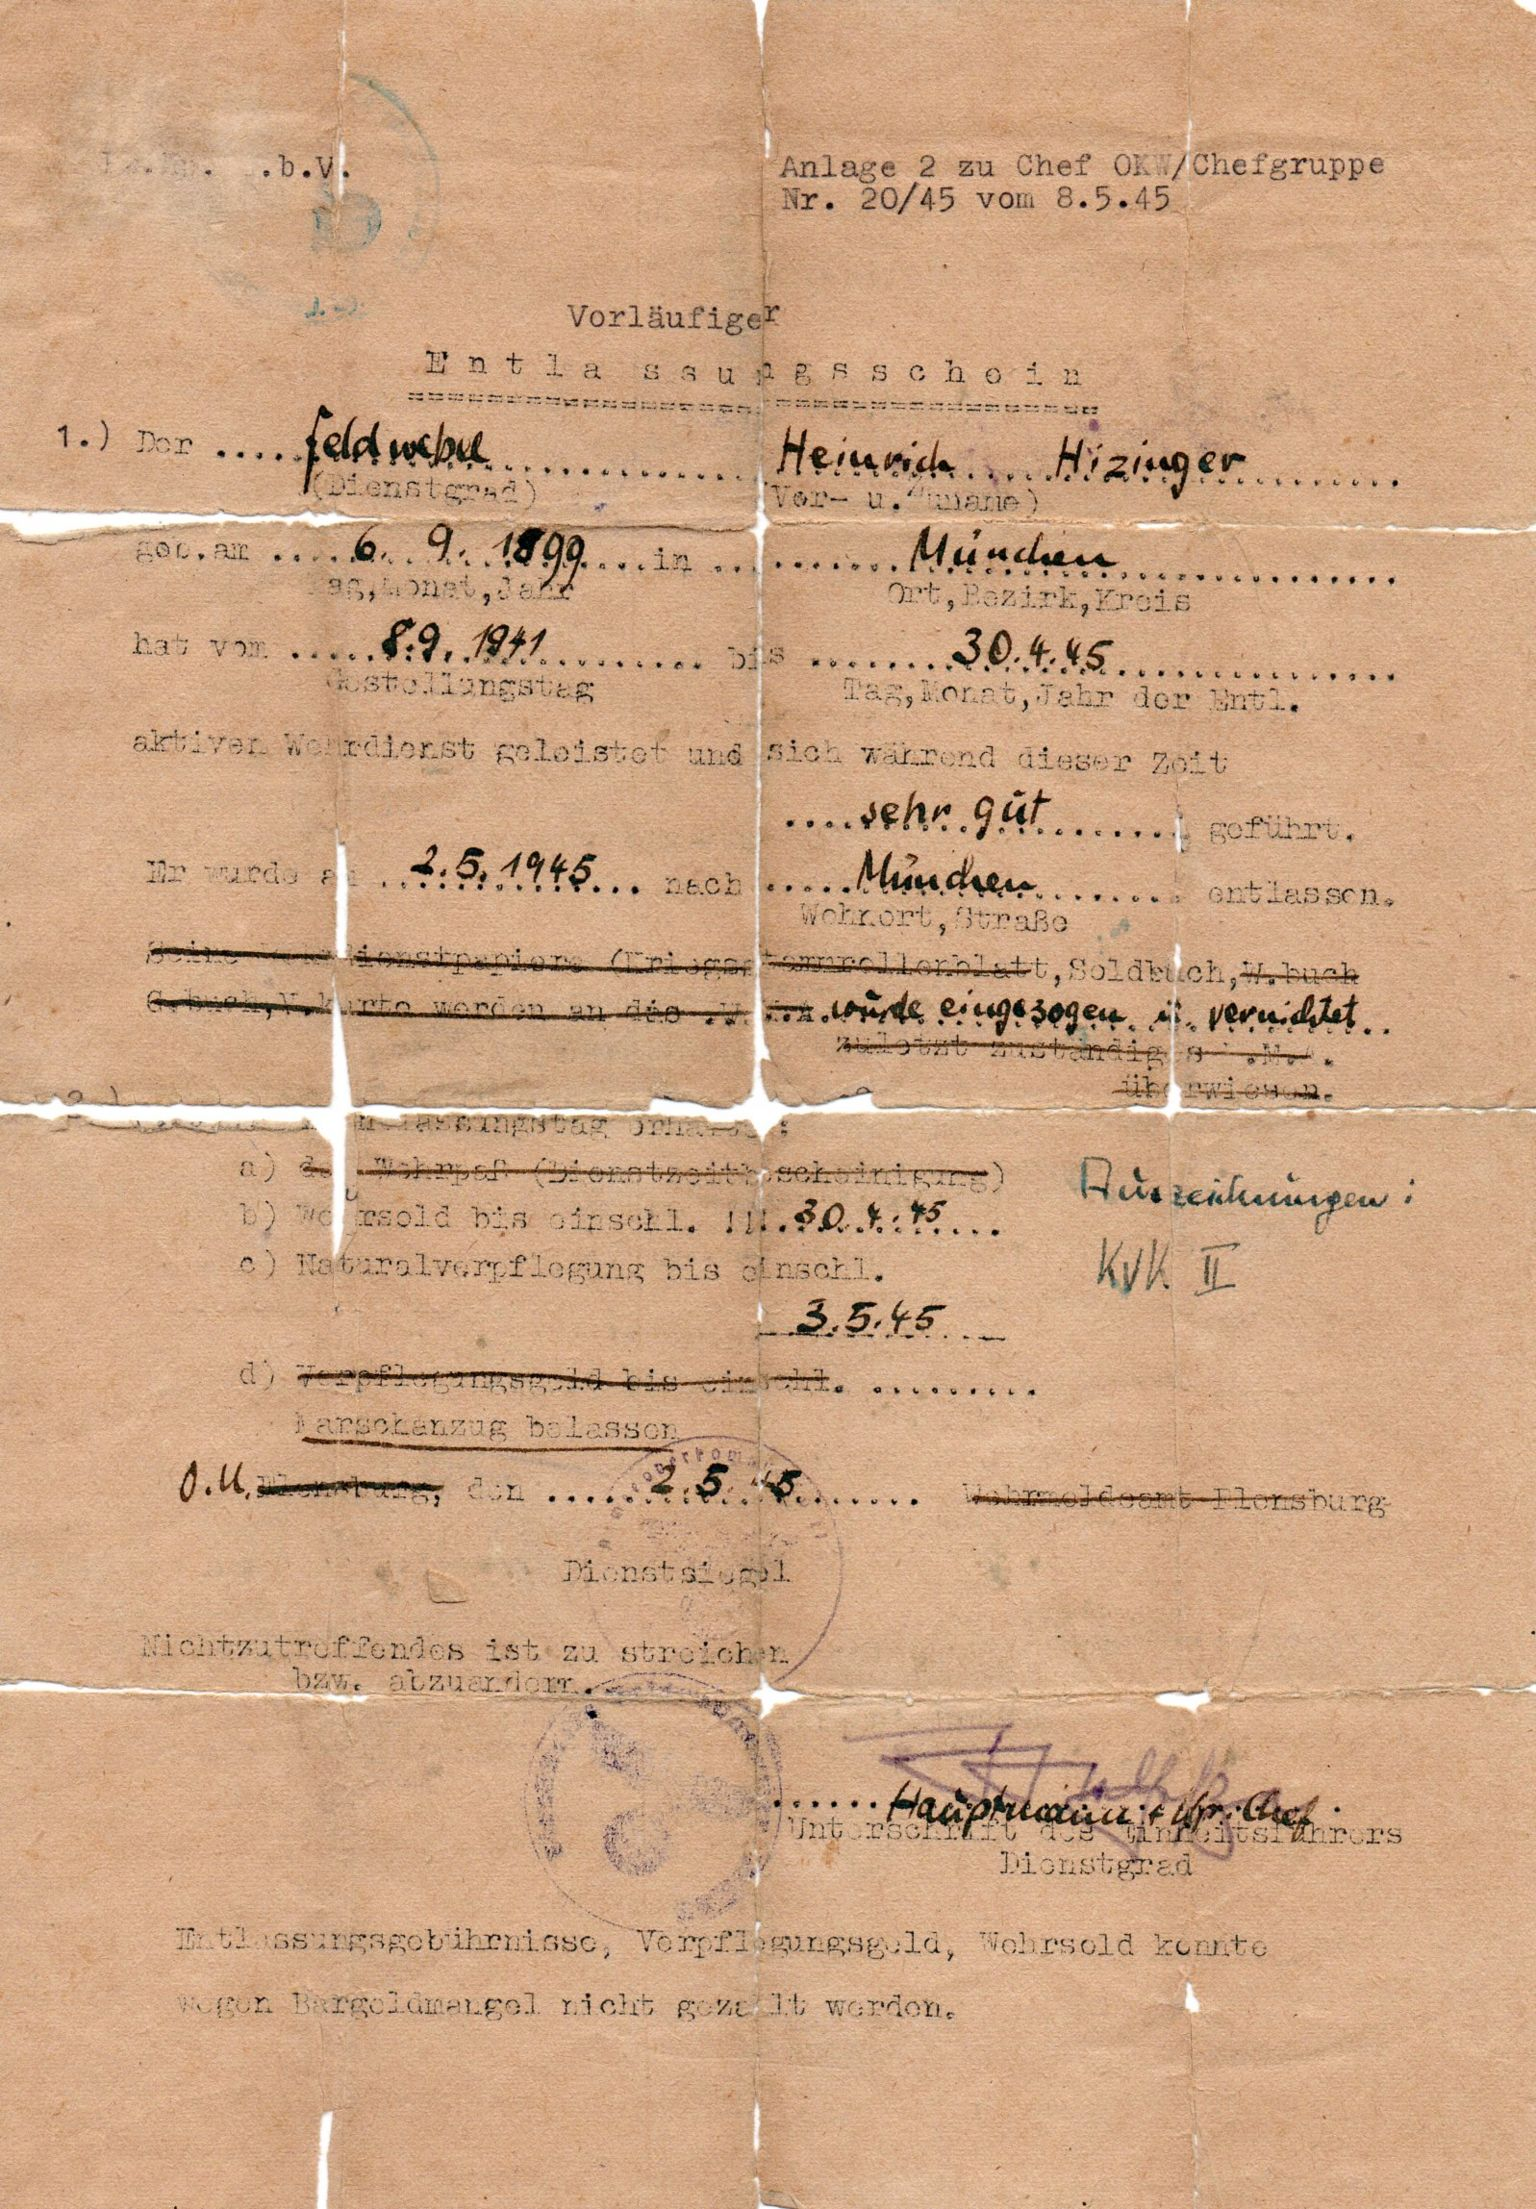 Himmler's documents, complete with false name and stamp